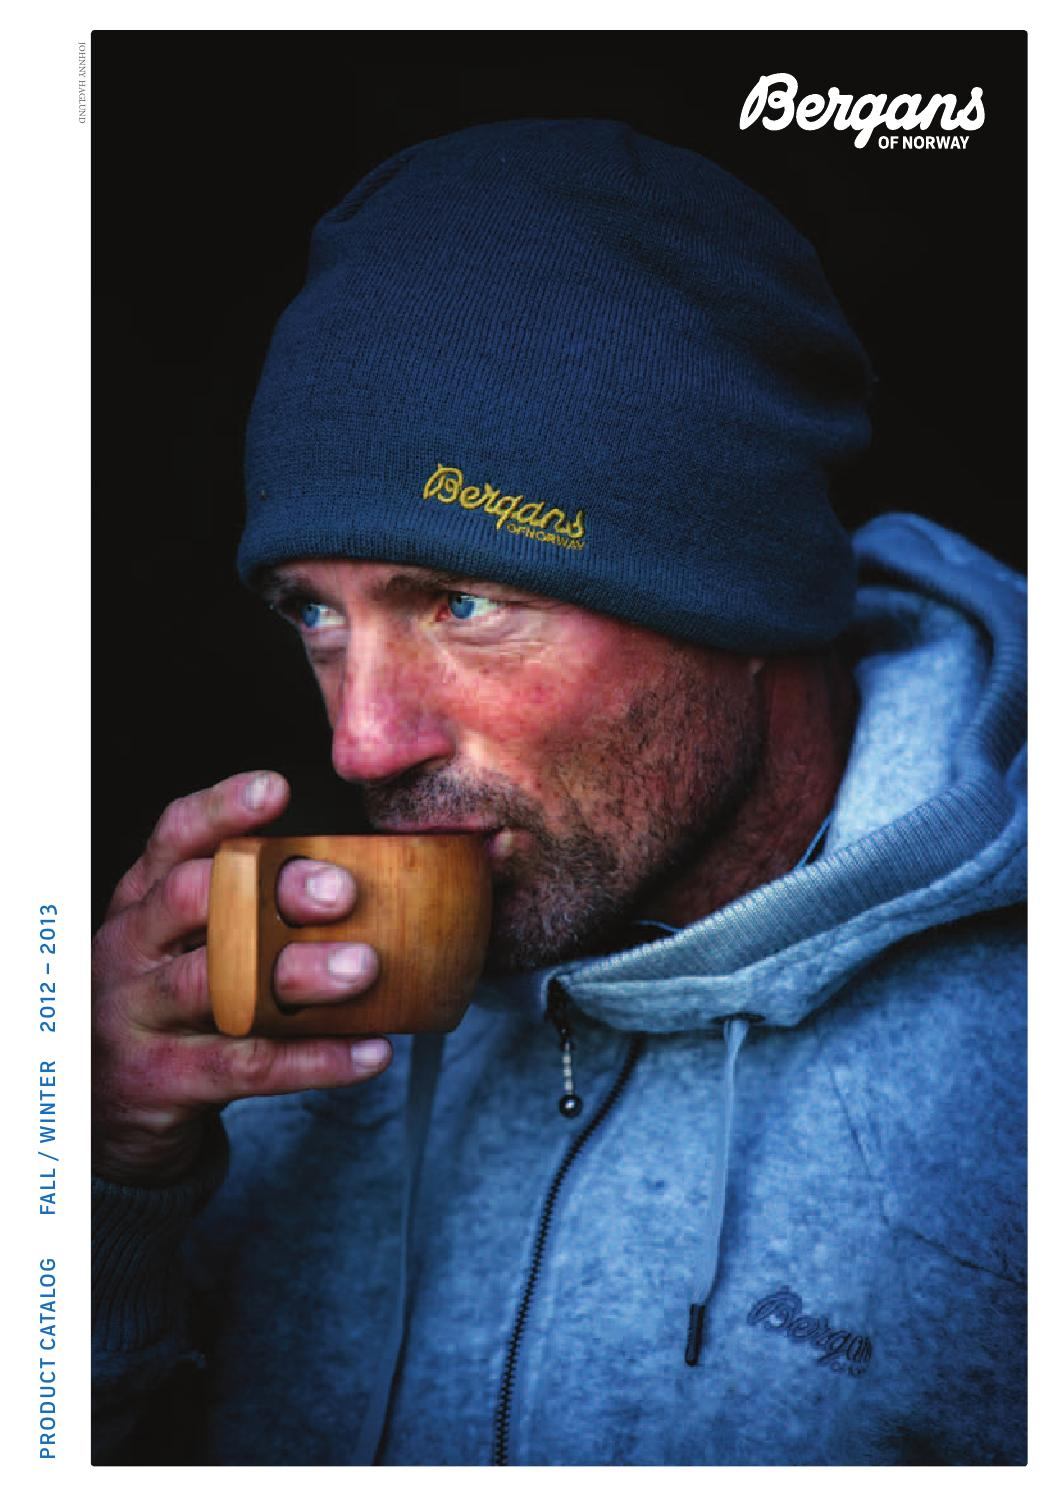 c71cdf10d12a7 Bergans Winter catalog by Bergans of Norway - issuu